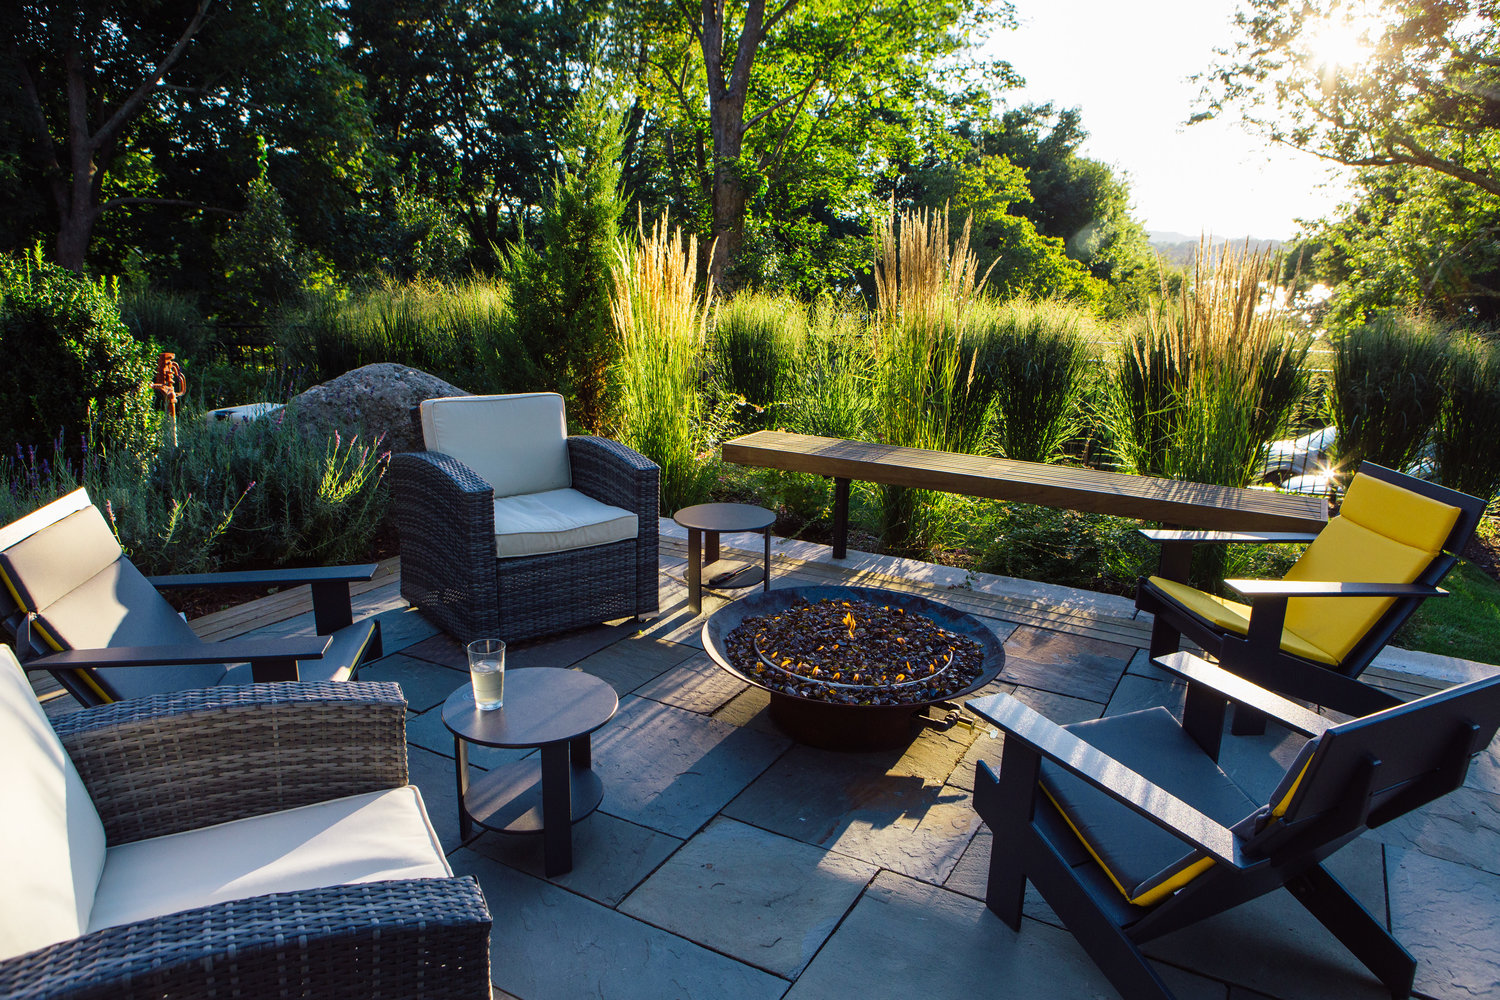 The fire pit area adjoining the pool enjoys its own private space, with natural grasses providing the relaxing atmosphere one would expect in this setting.